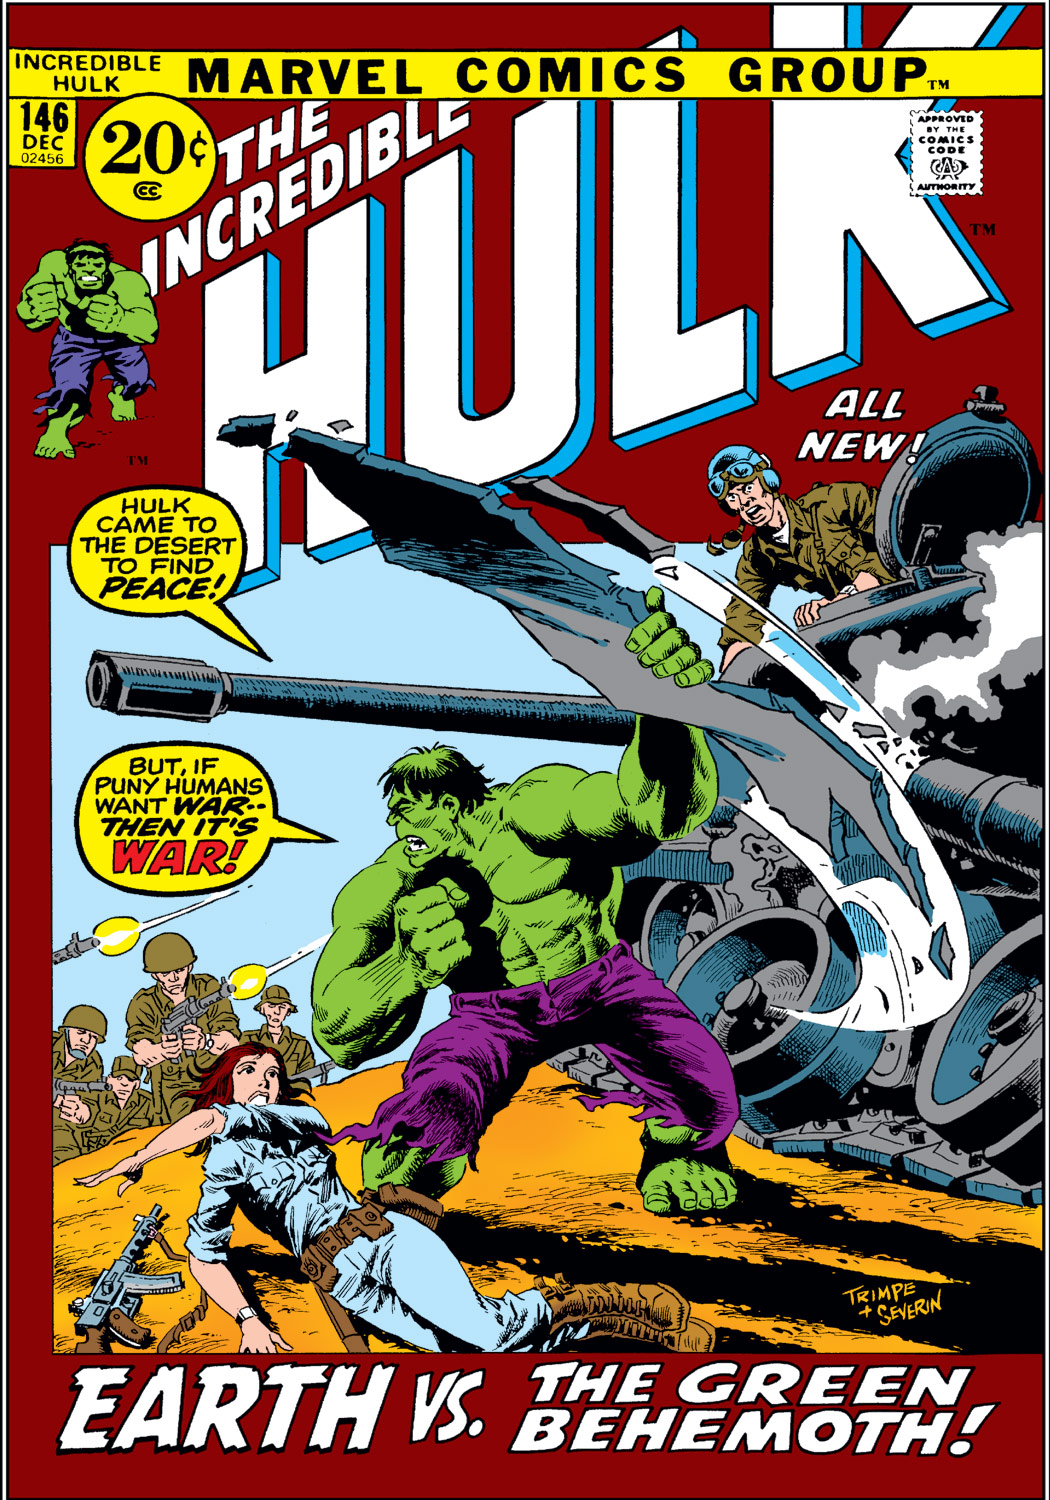 Incredible Hulk (1962) #146